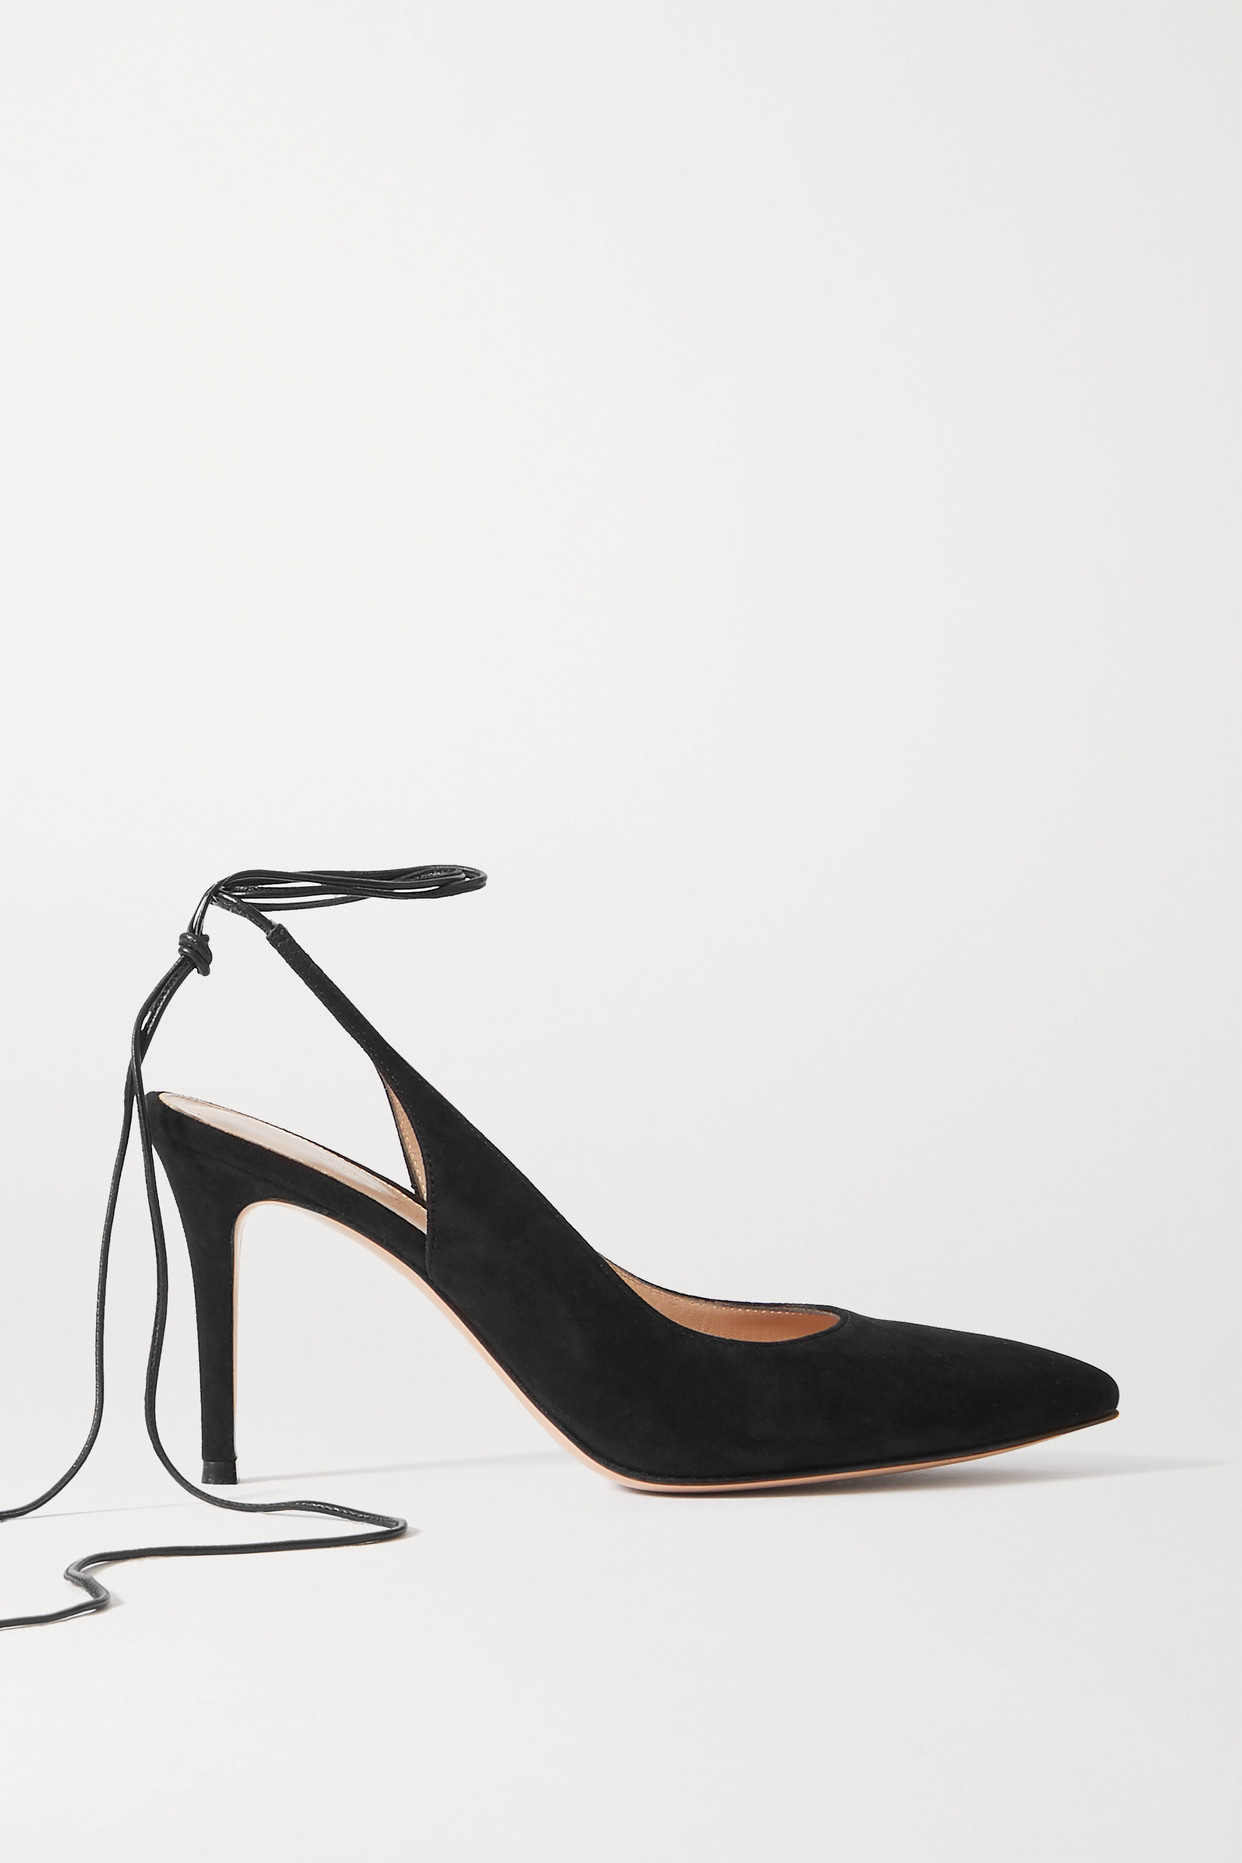 GIANVITO ROSSI - 85 Leather-trimmed Suede Pumps - Black - IT41